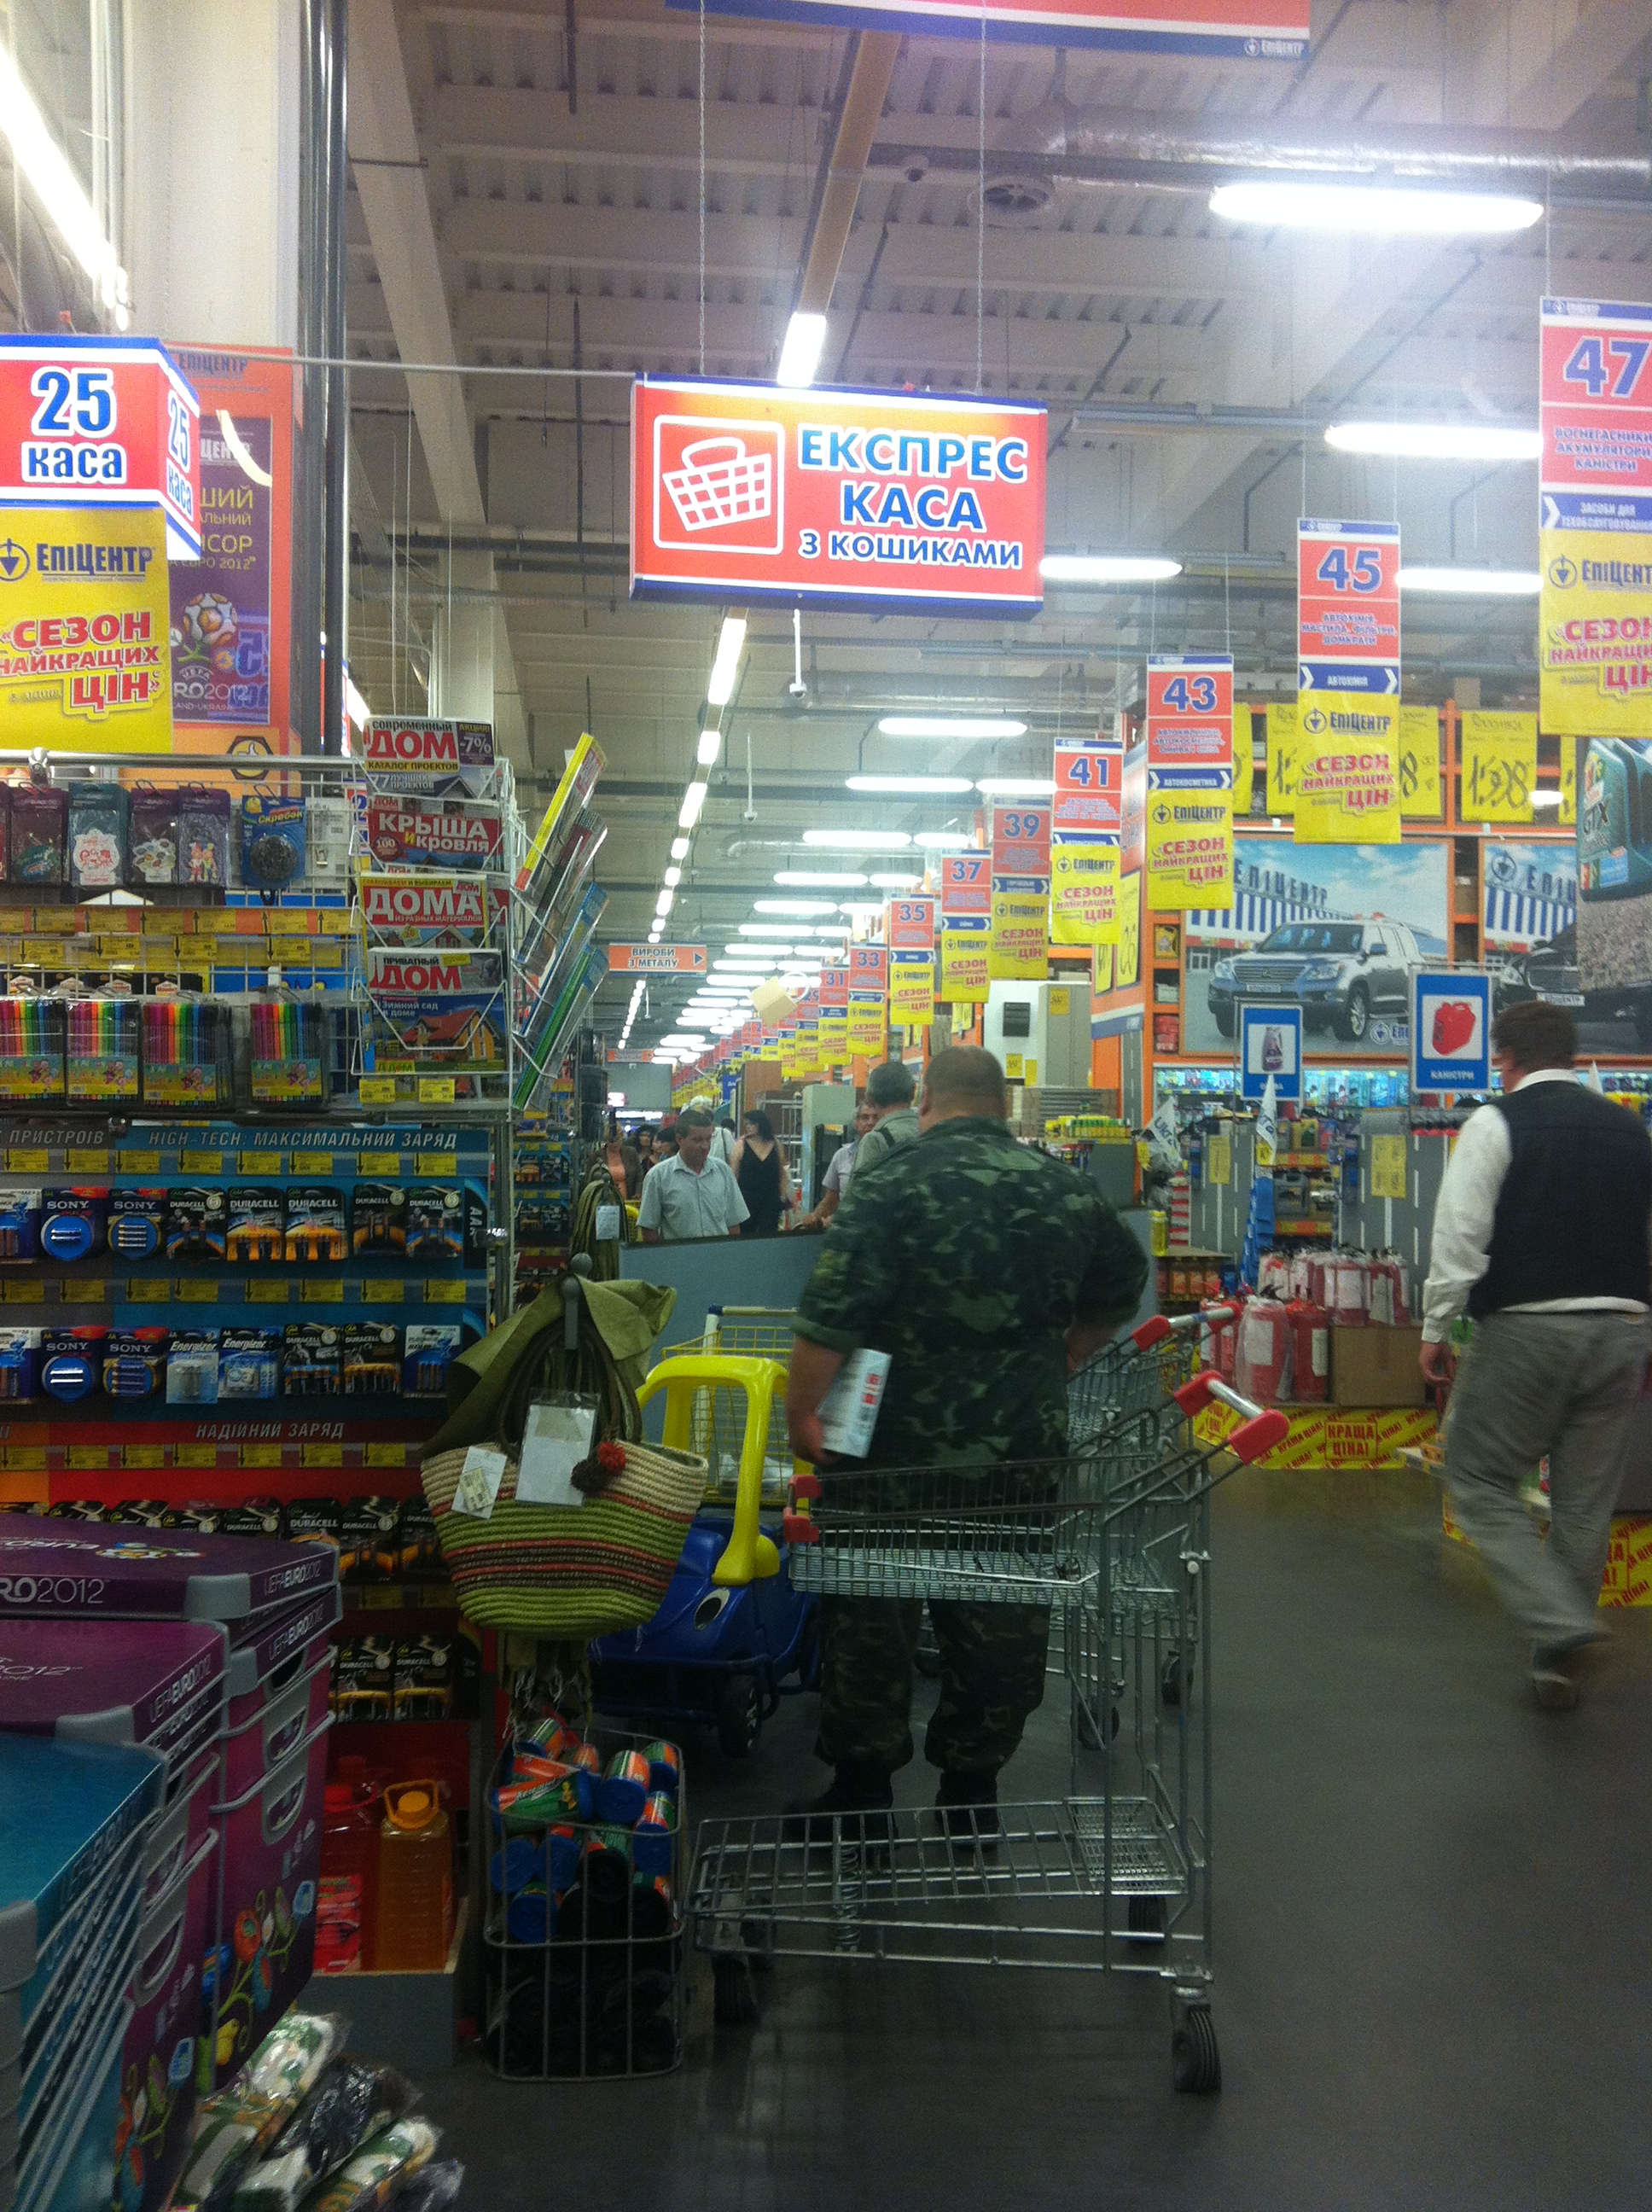 Aisles inside Epicenter, a Ukrainian superstore